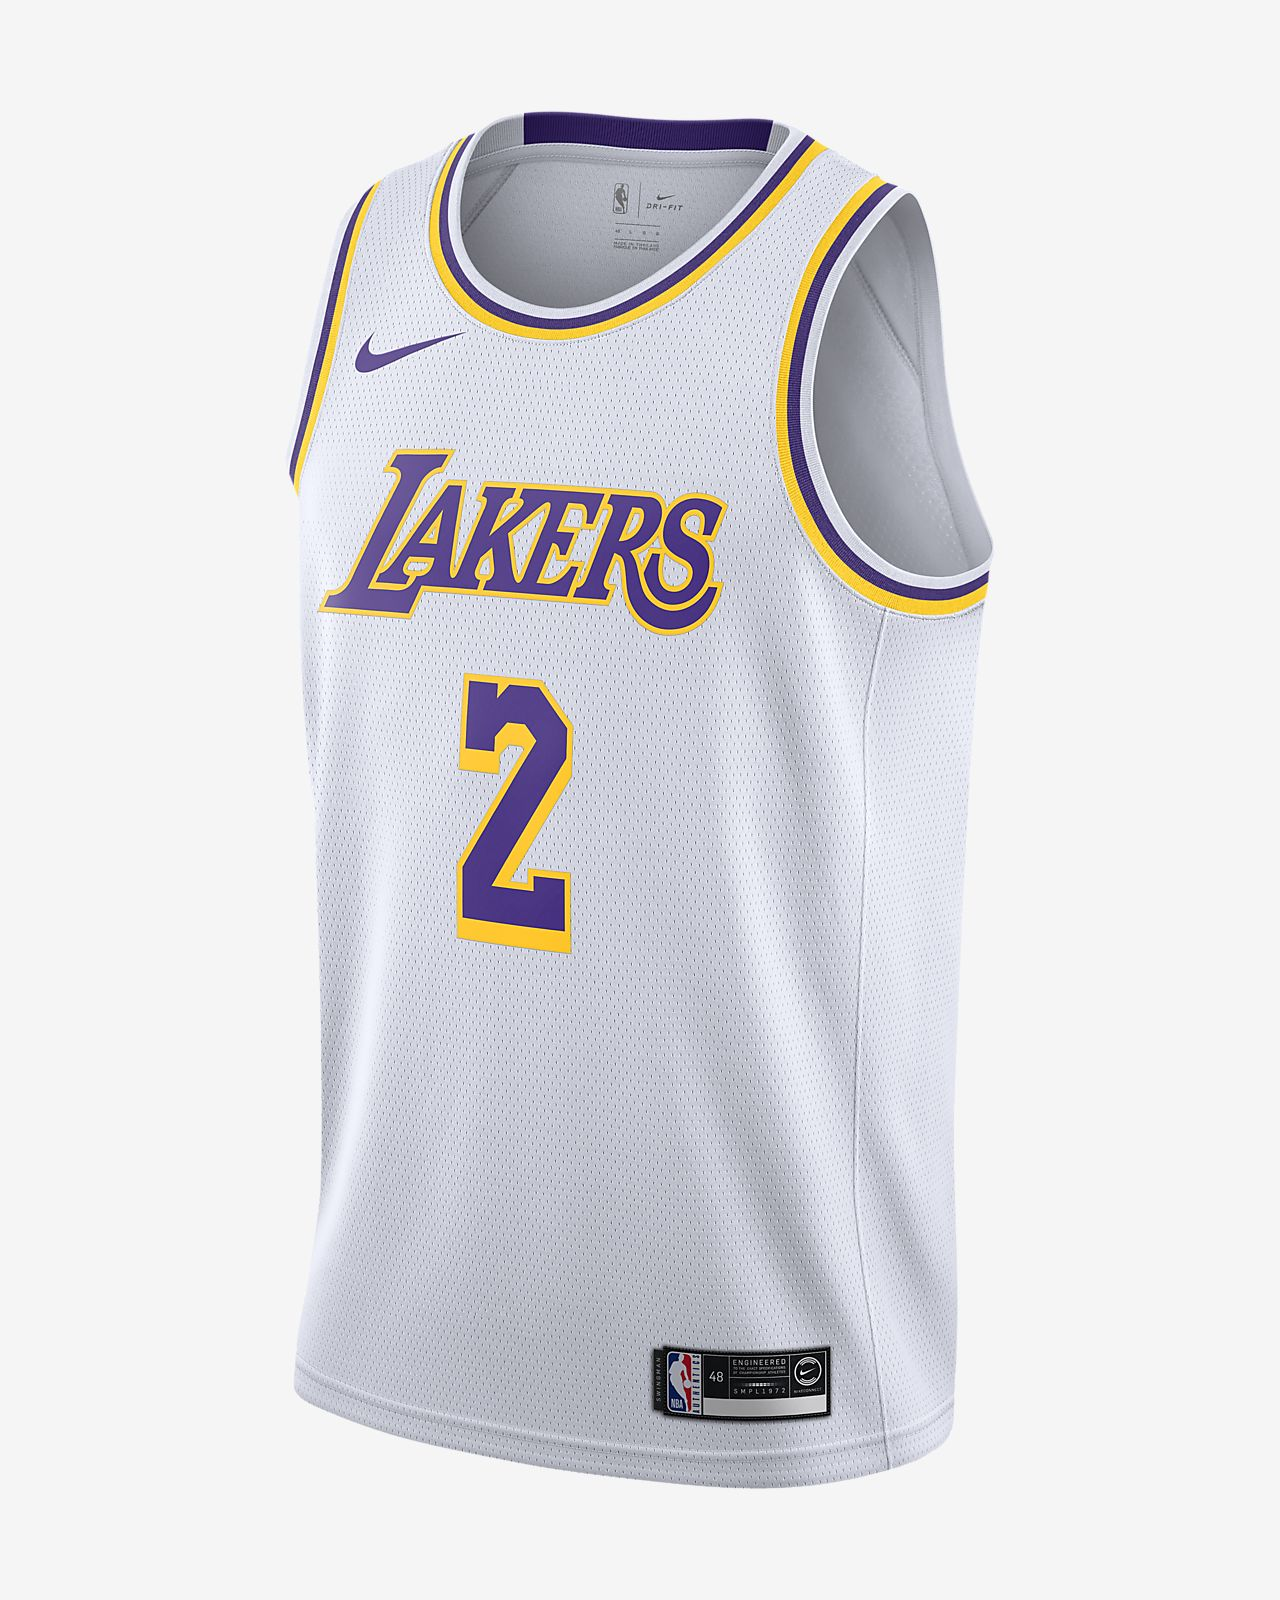 adf2325f4b38 Men s Nike NBA Connected Jersey. Lonzo Ball Association Edition Swingman (Los  Angeles Lakers)